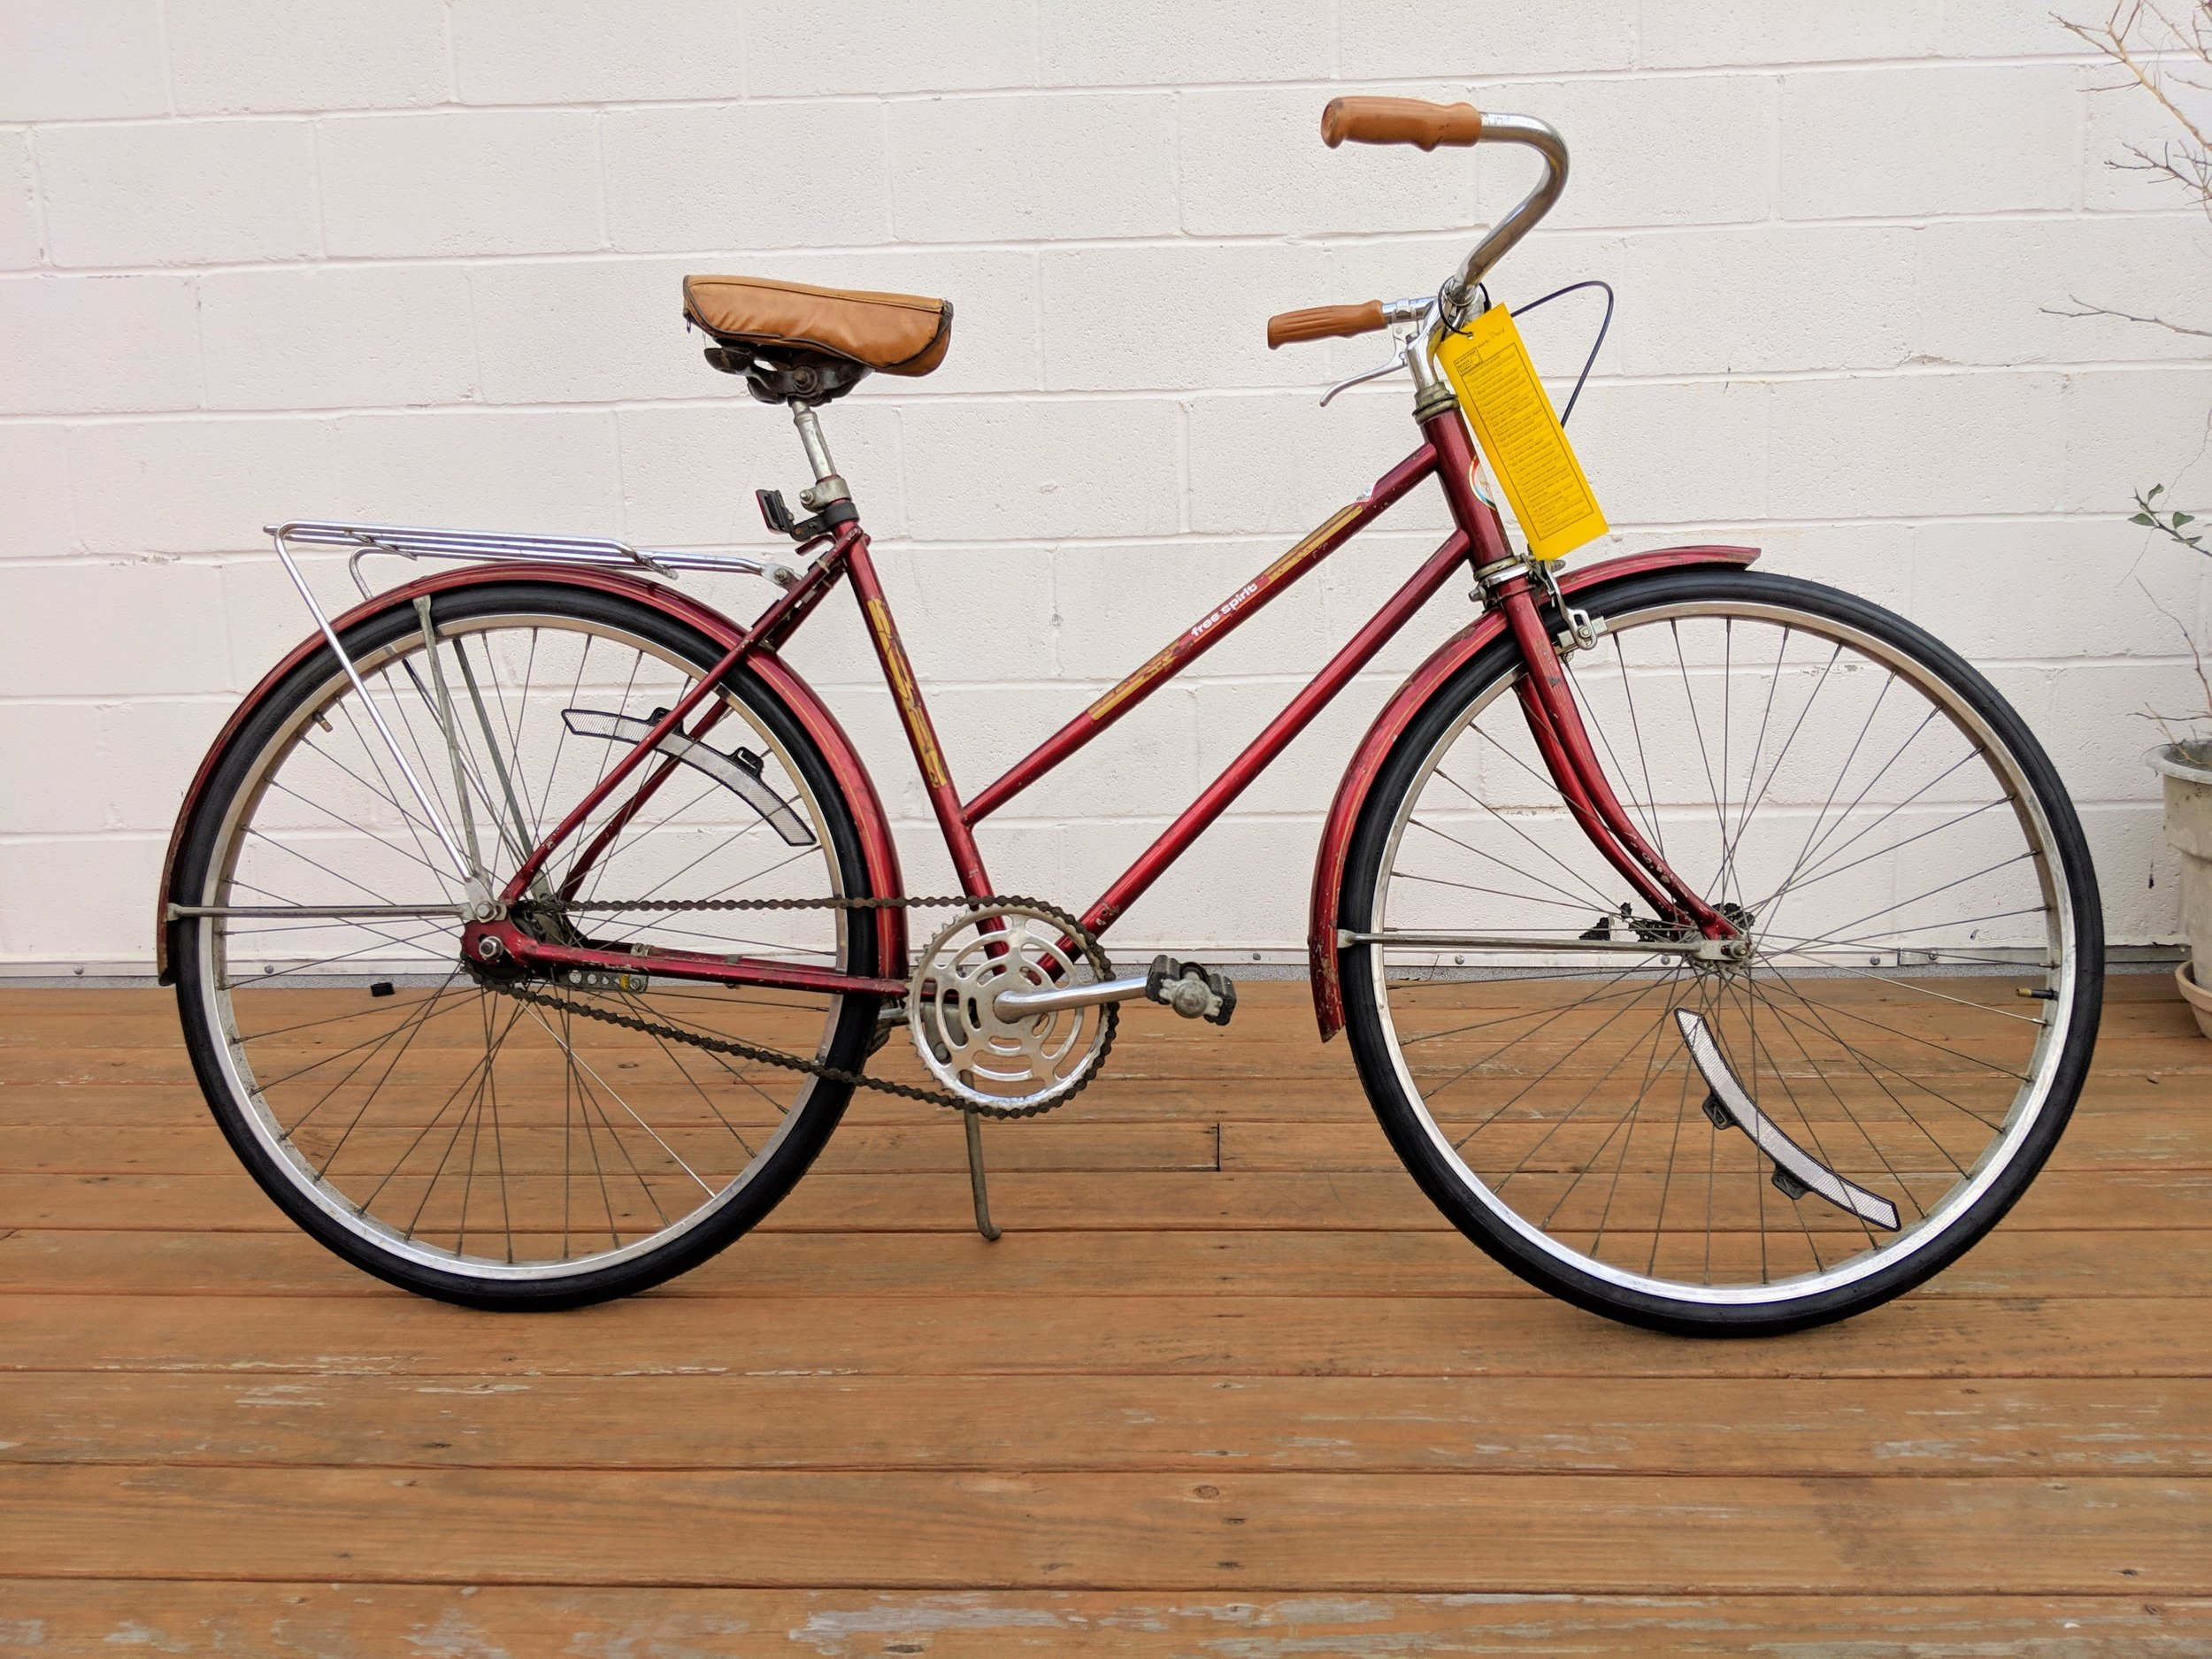 50cm Red Free Spirit Cruiser $200